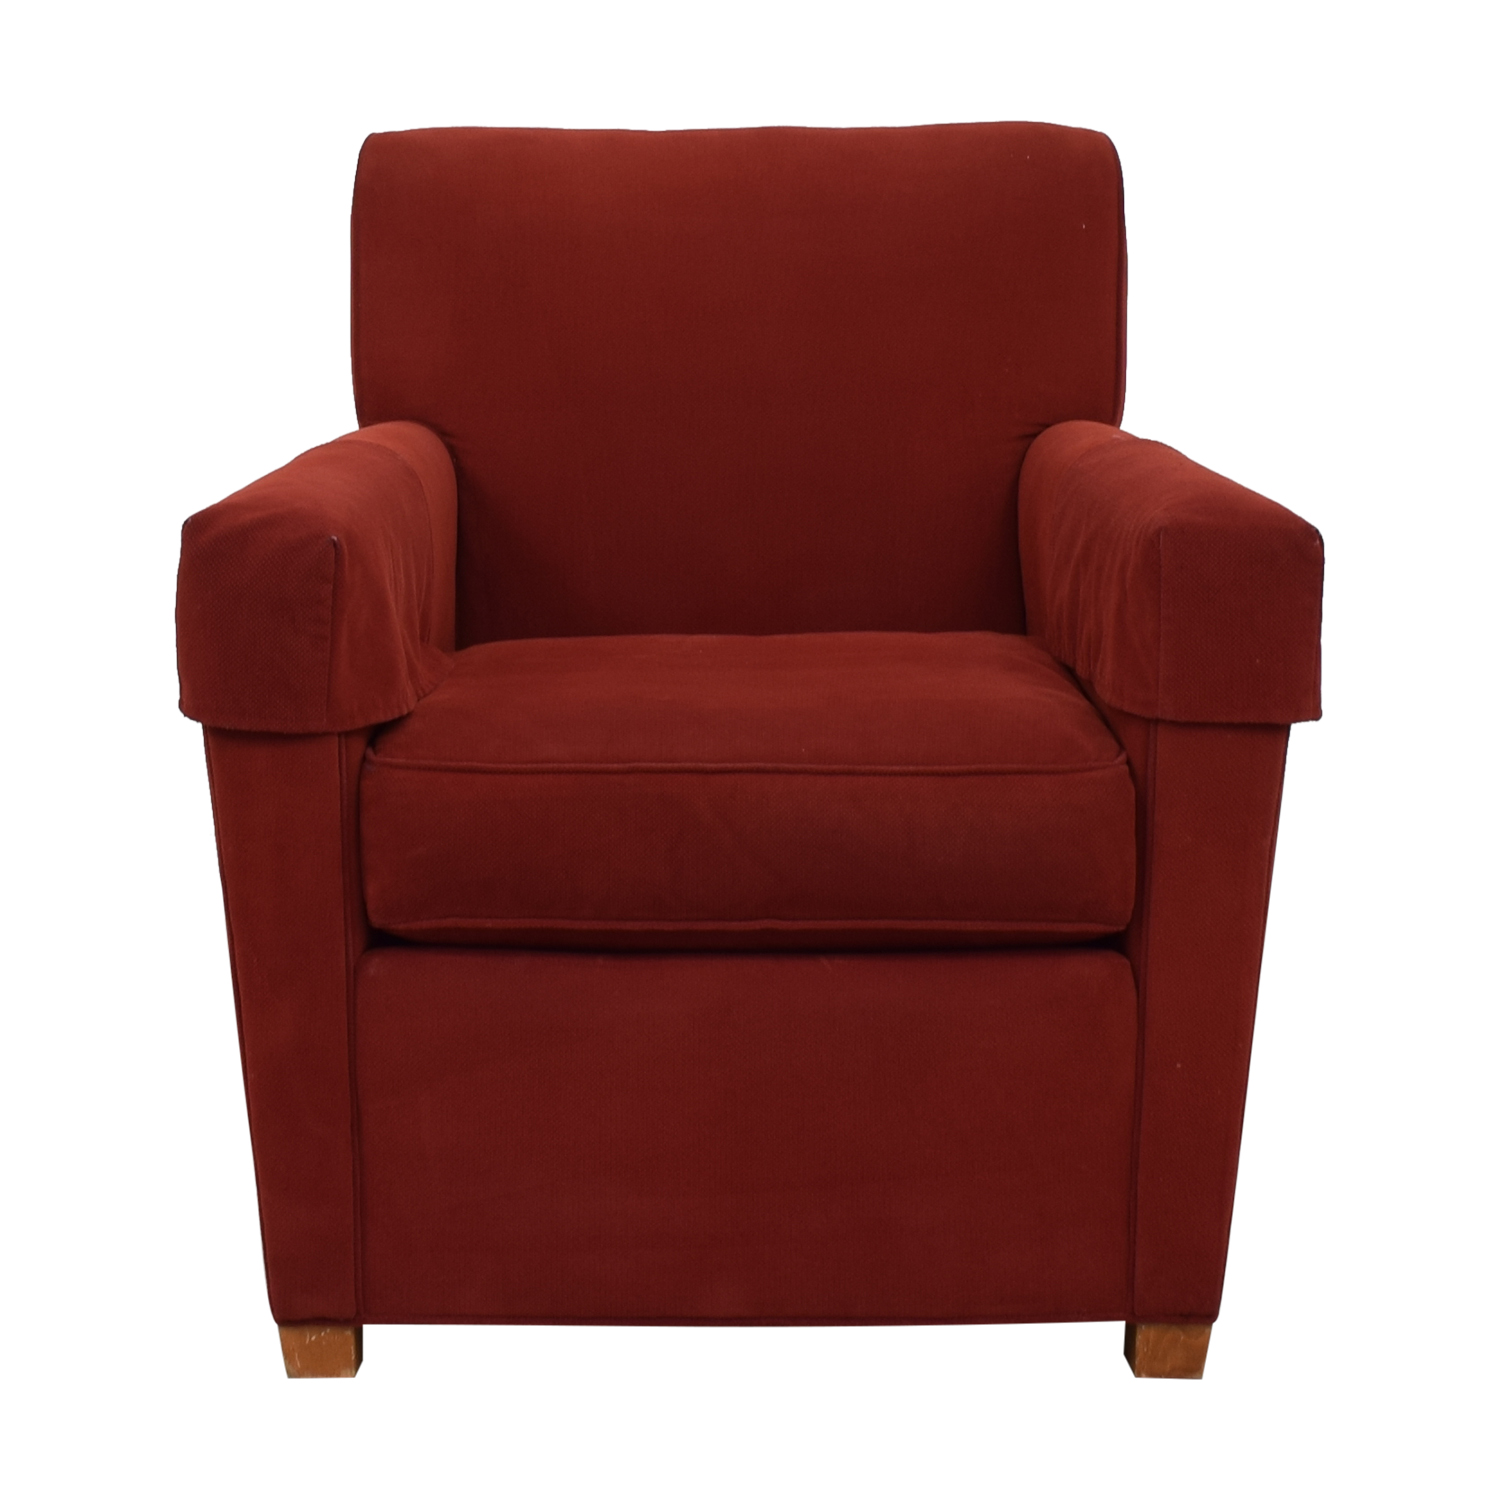 86% OFF - Stickley Stickley Red Arm Chair / Chairs